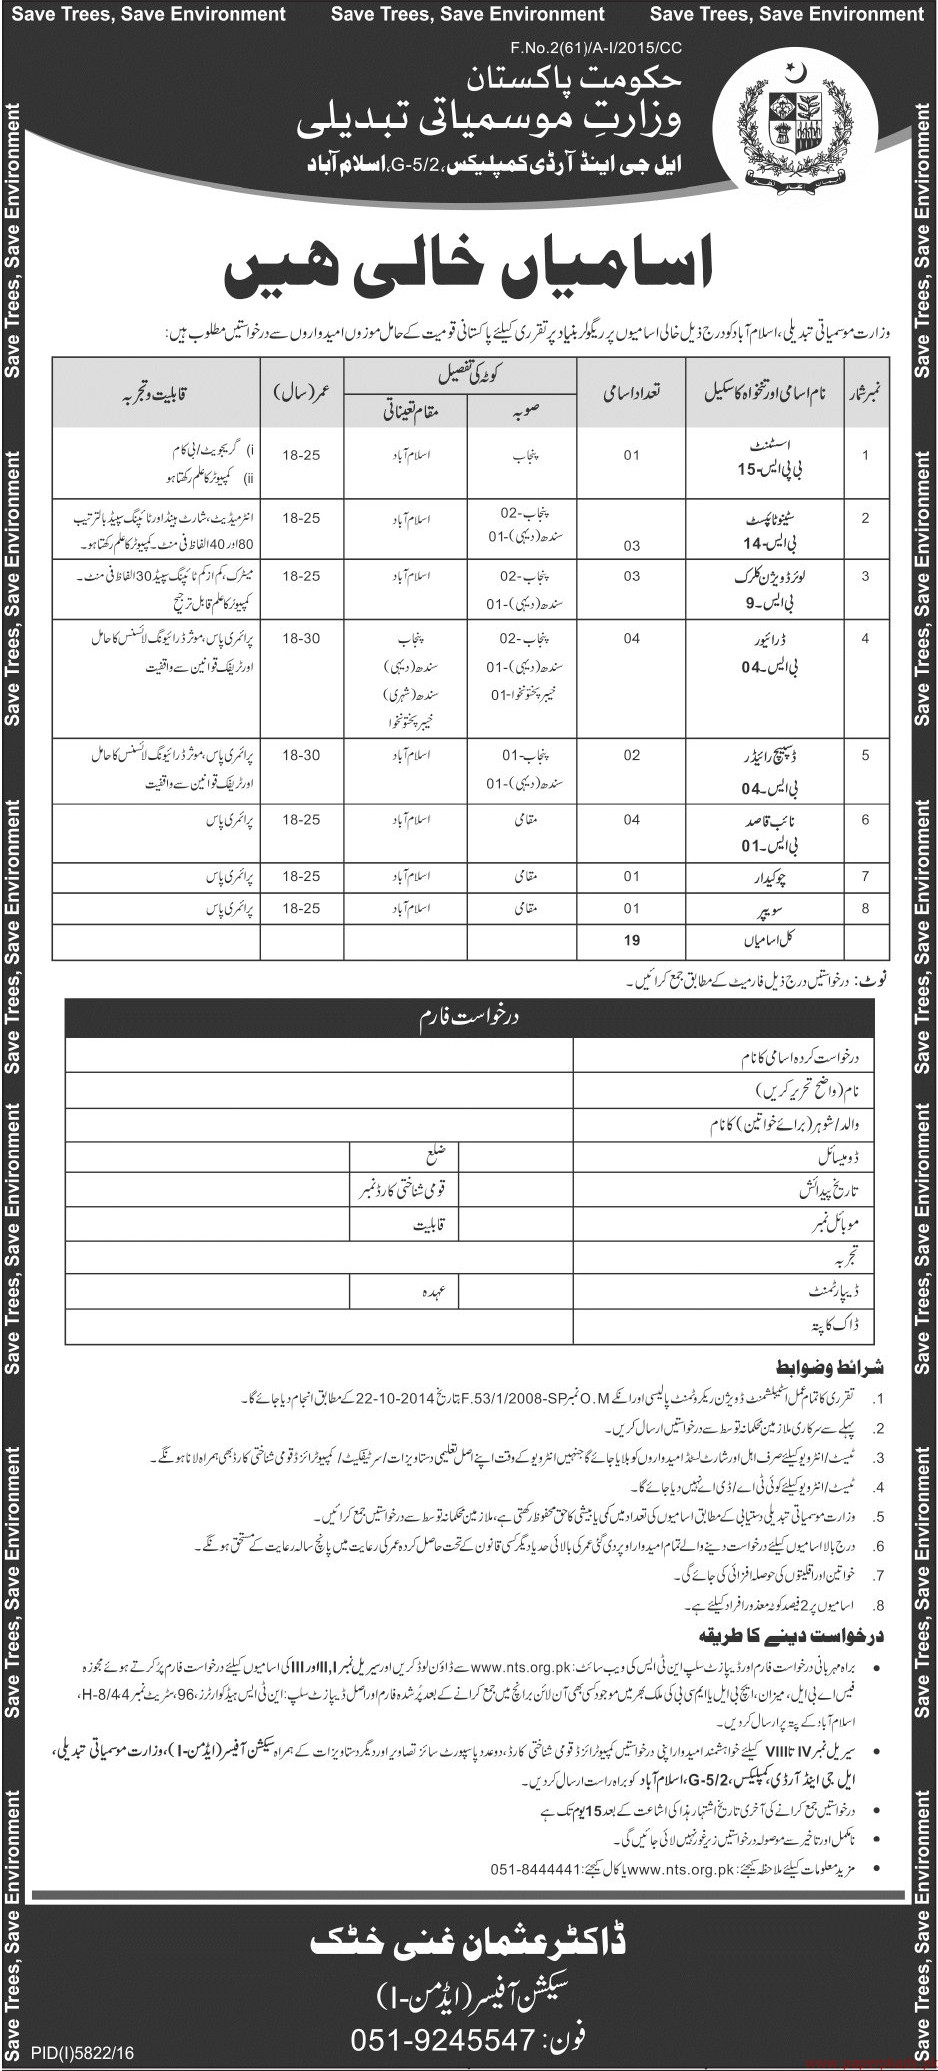 Government of Pakistan Ministry of Climate Change Weather Department Jobs 2017